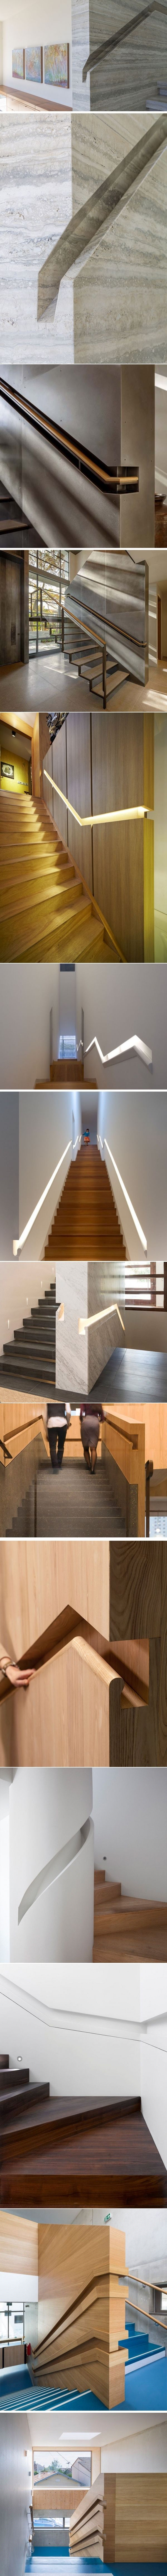 Stair Design Idea – 9 Examples Of Built-In Handrails